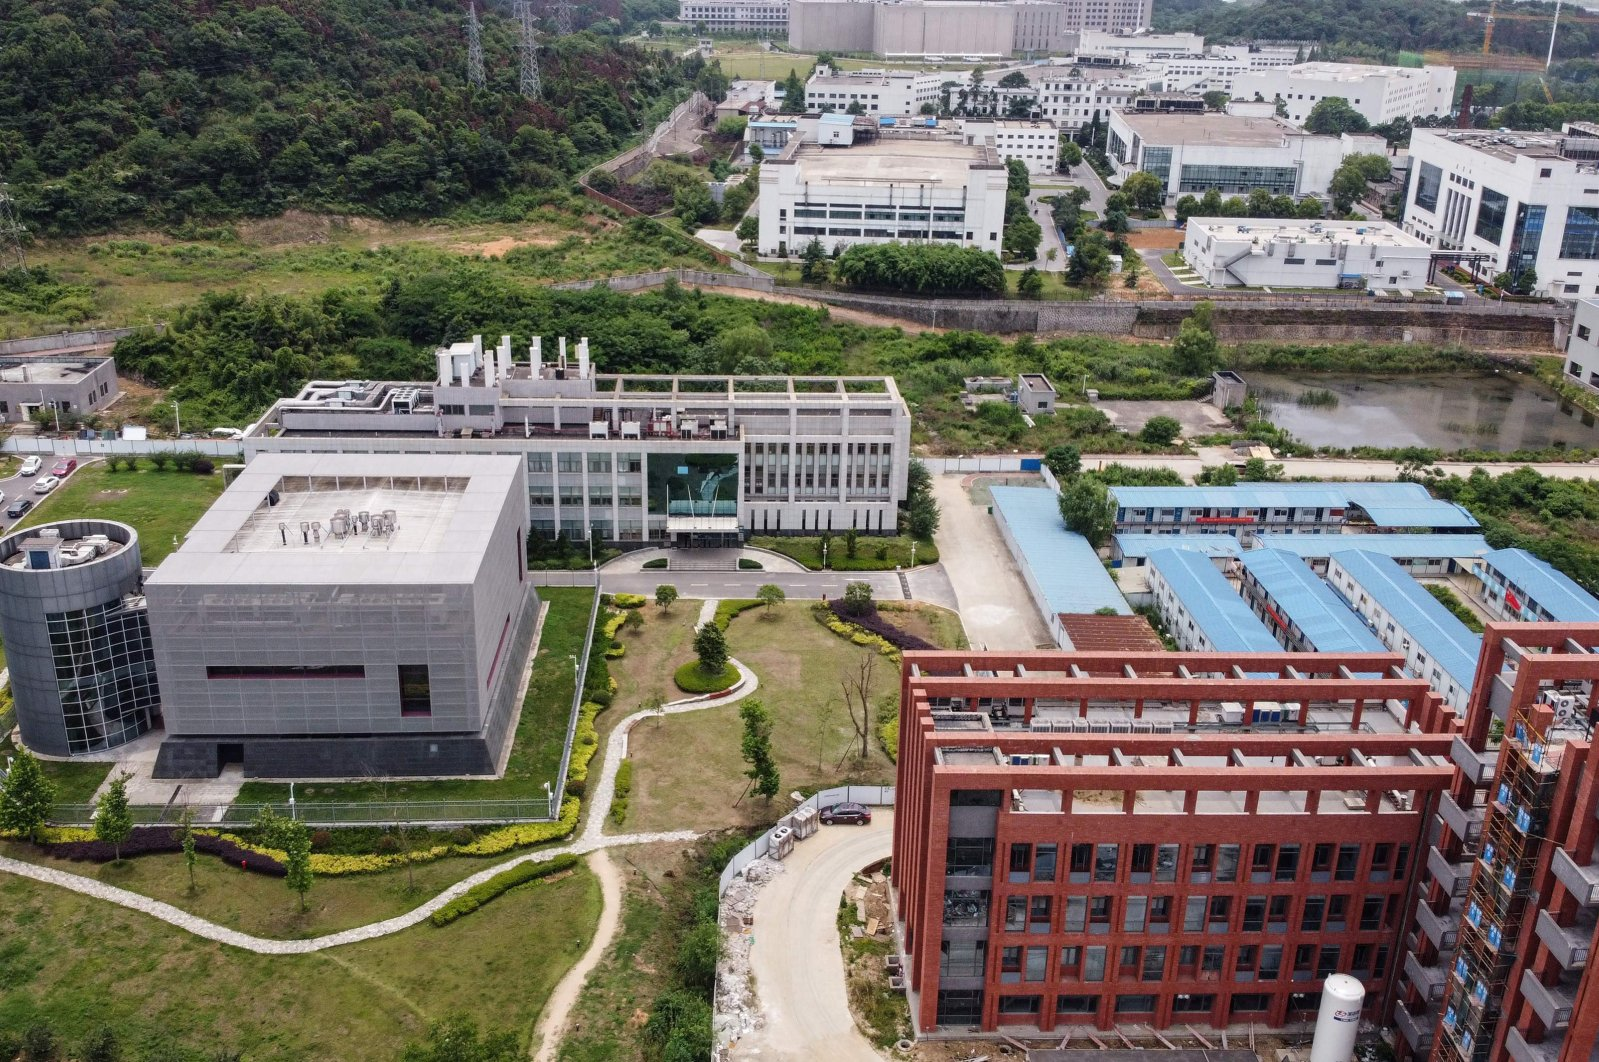 This aerial view shows the P4 laboratory (L) on the campus of the Wuhan Institute of Virology, Wuhan, central Hubei province, China, May 13, 2020. (AFP Photo)